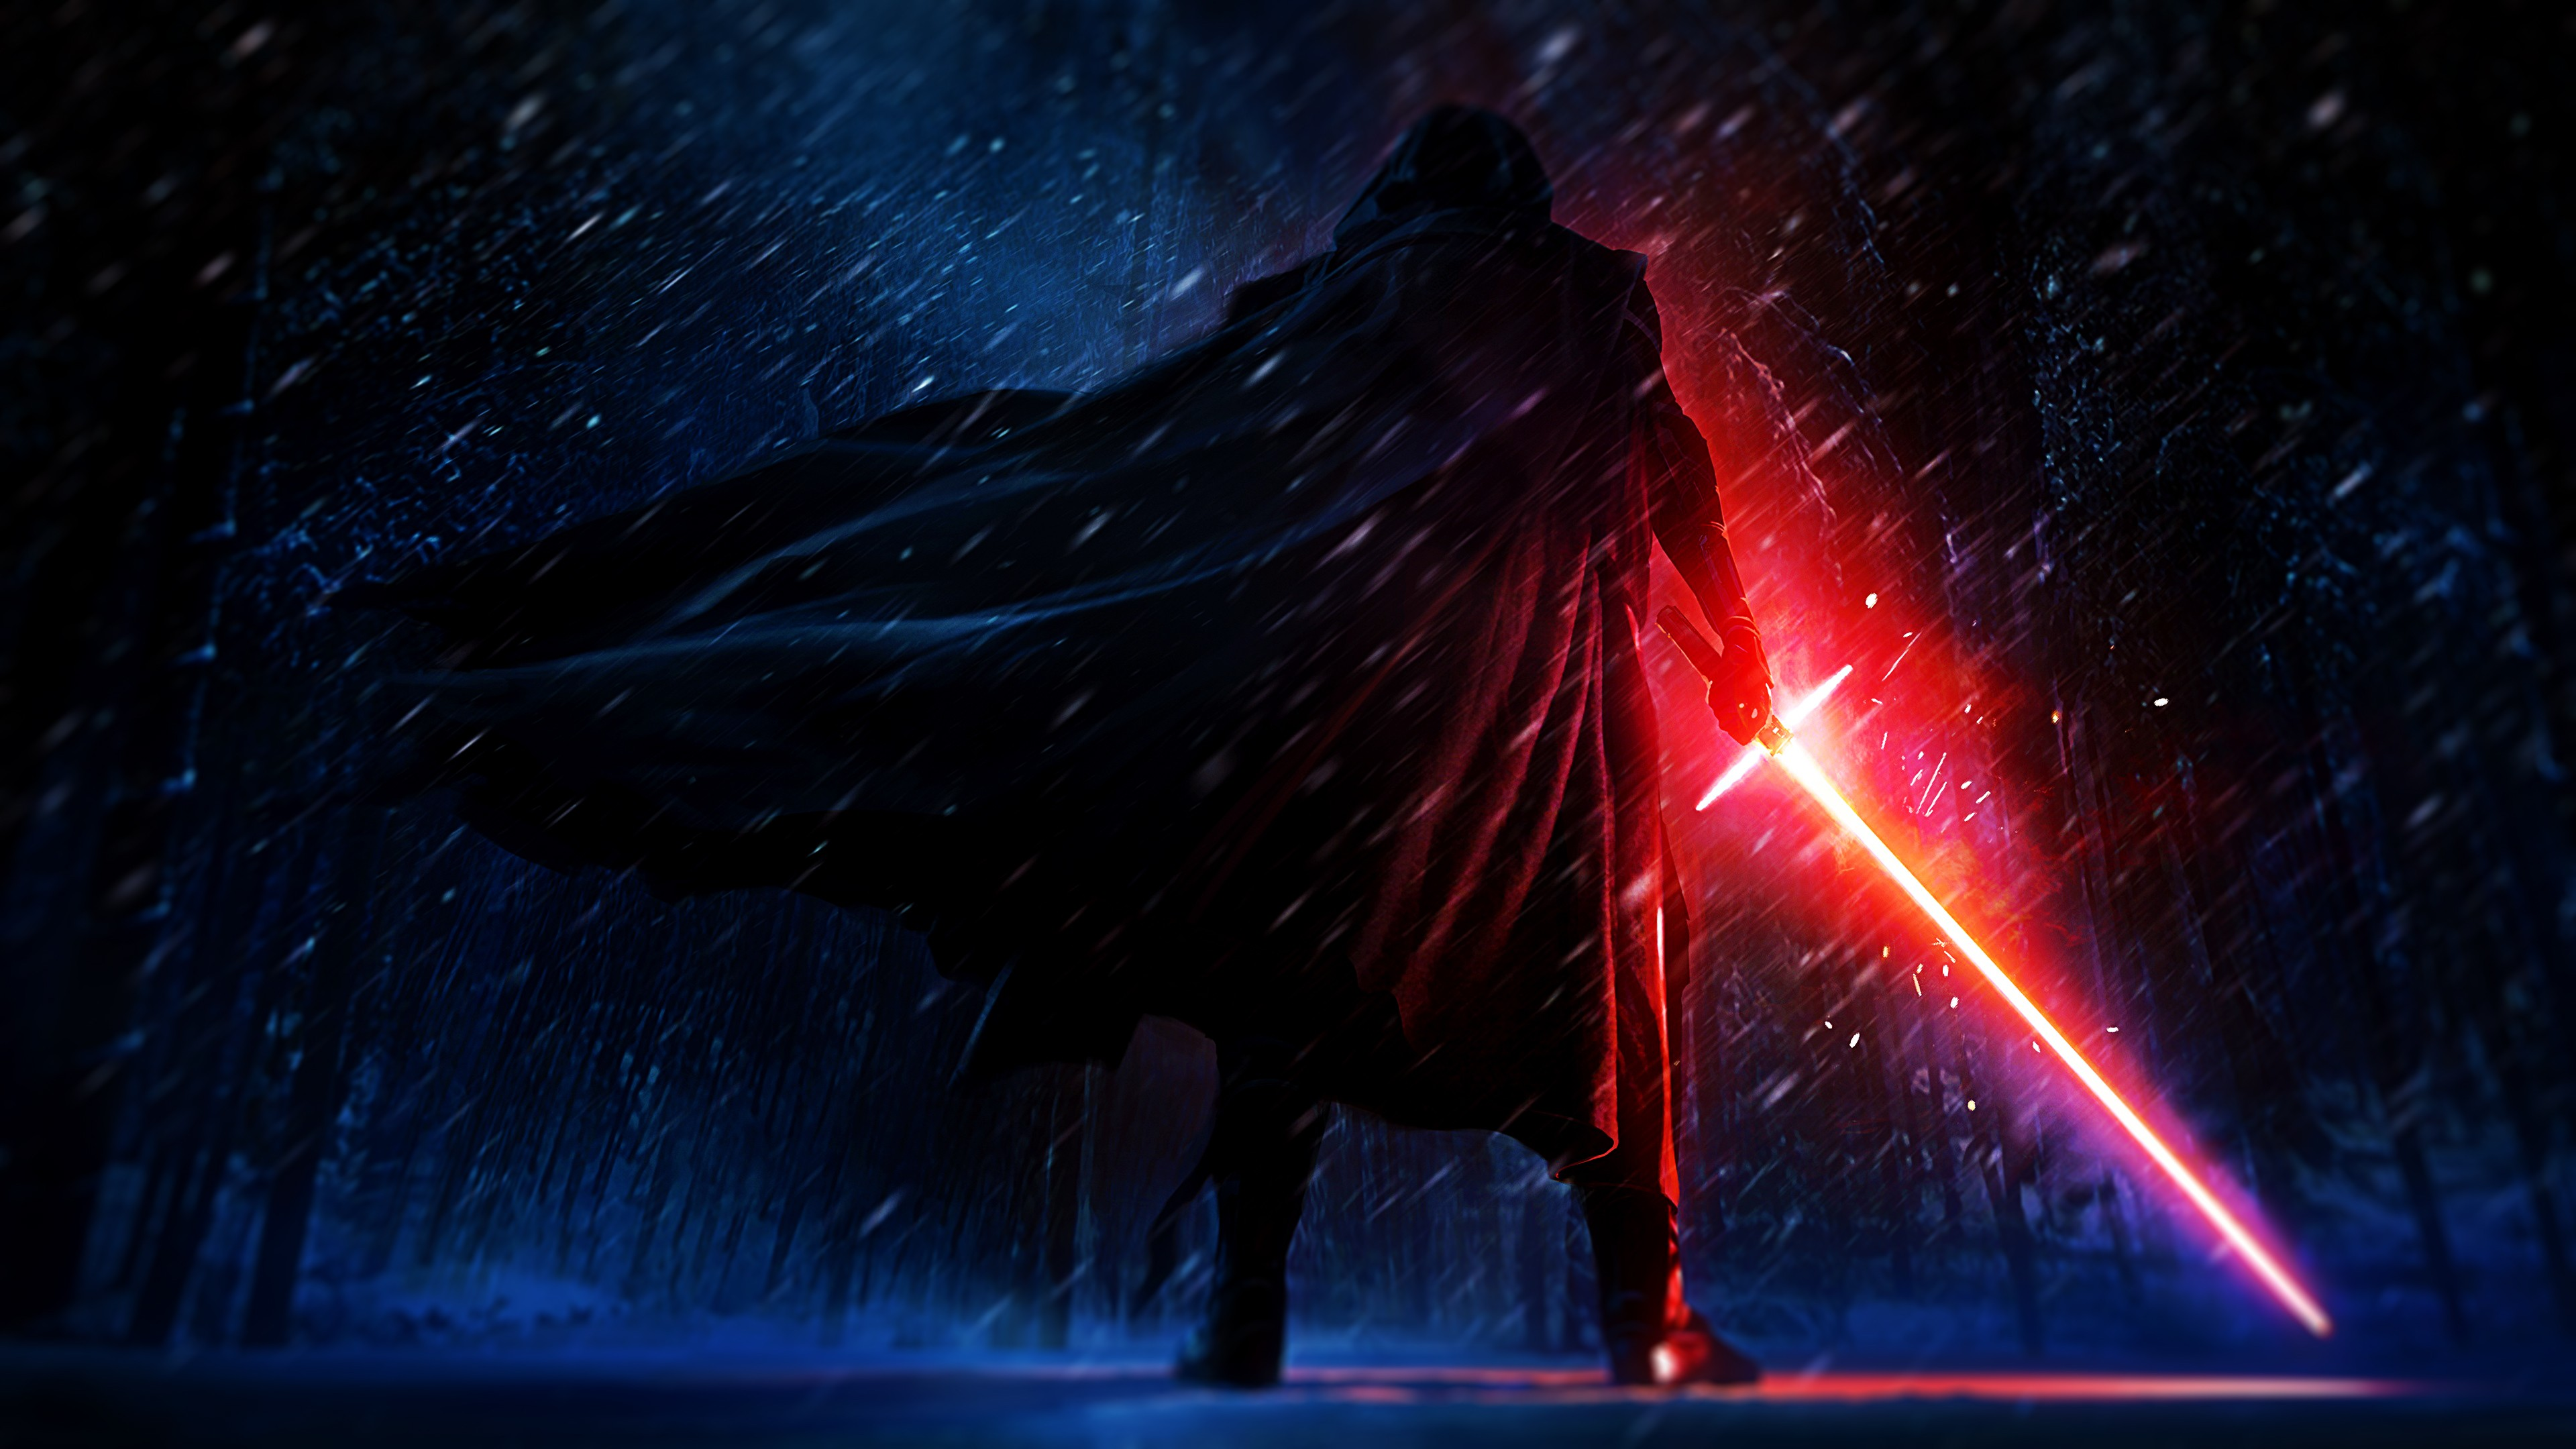 Kylo ren wallpaper hd download free cool backgrounds - Star wars cool backgrounds ...